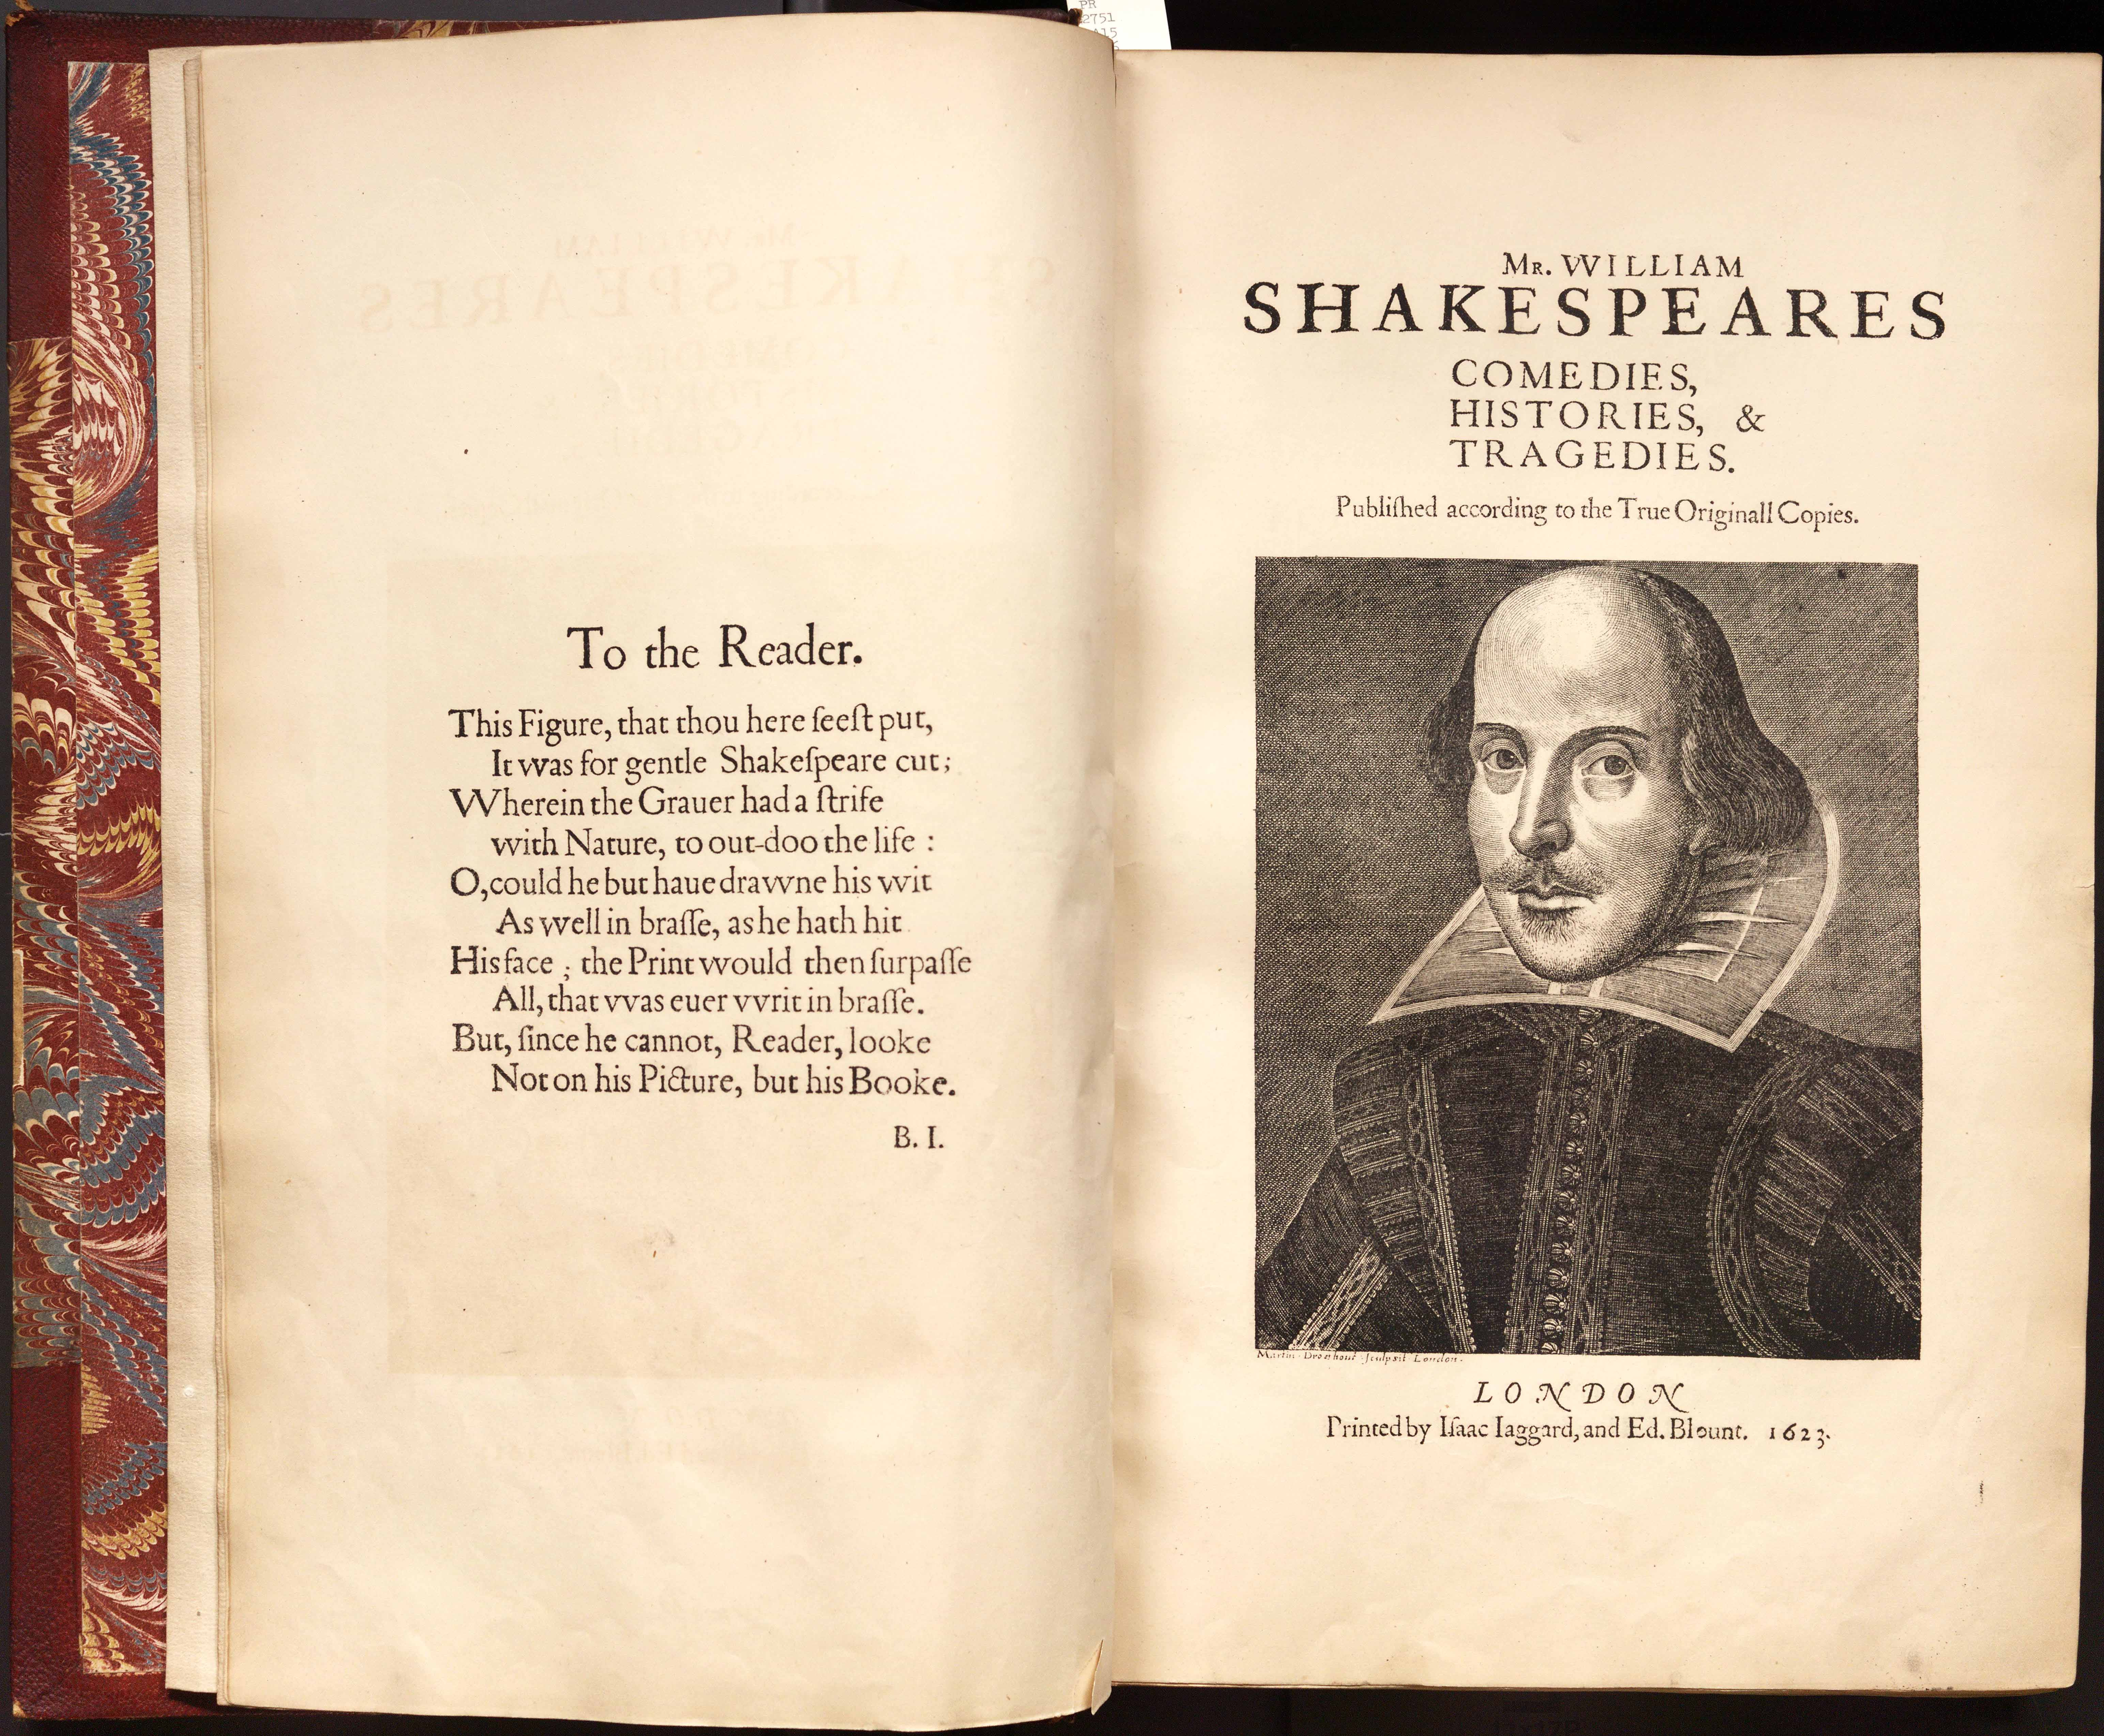 William Shakespeare's first anthology of plays- First Folio,being showcased at the National Library.